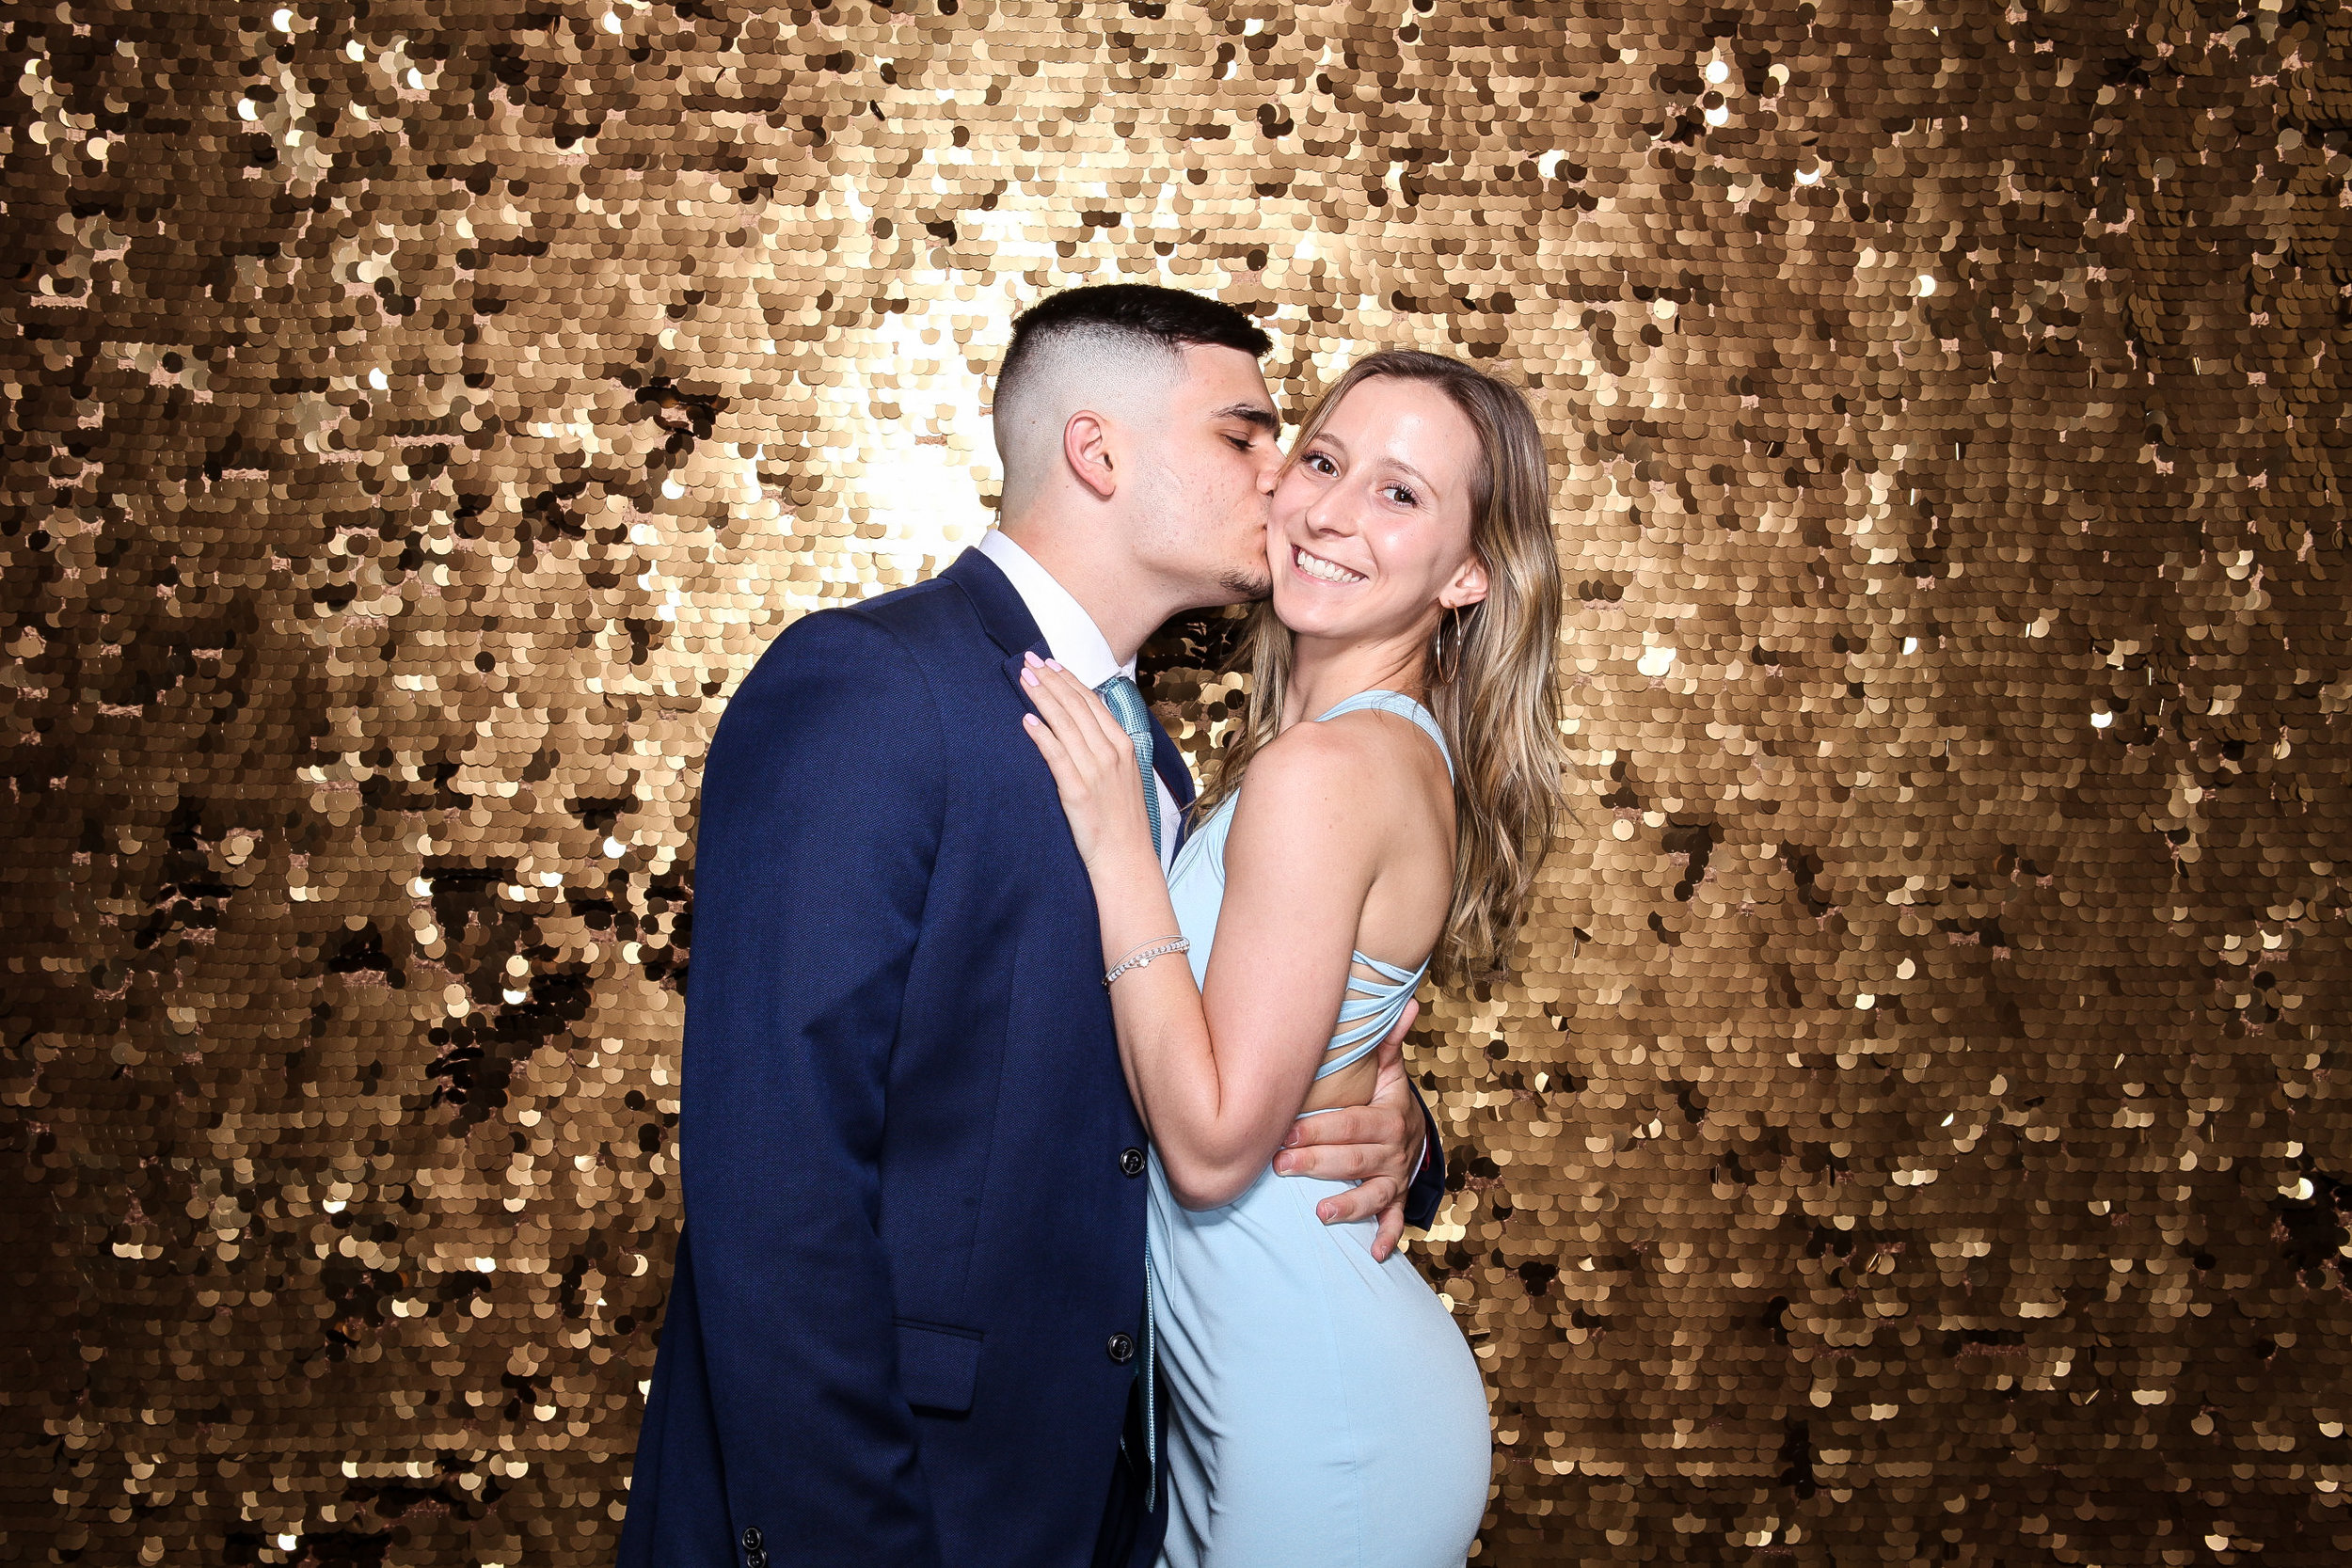 20190503_Adelphi_Senior_Formal-072.jpg